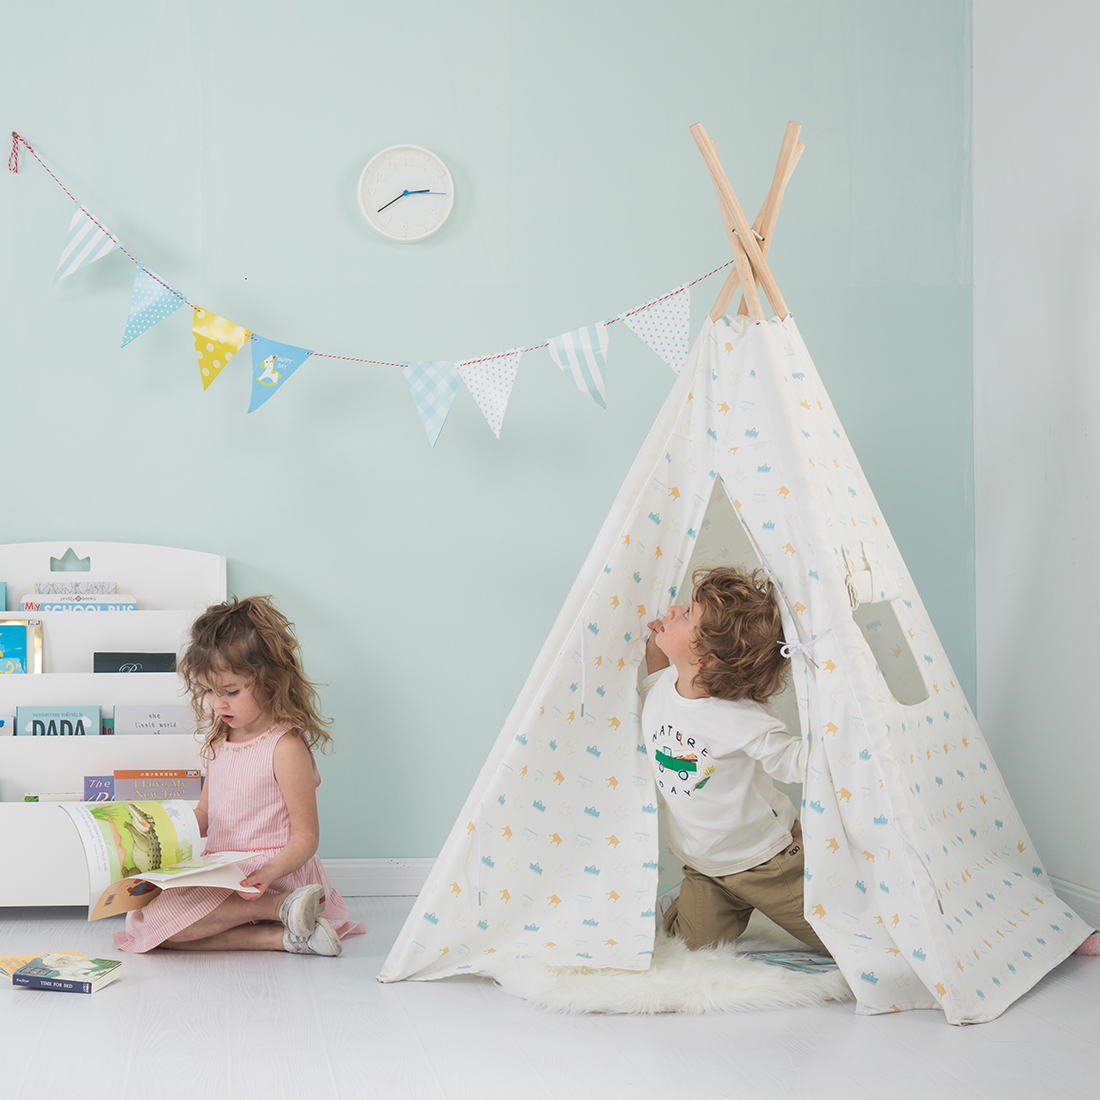 Custom Foldable Girls Teepee House Toy Kids Children Indoor Baby Play Tent with window